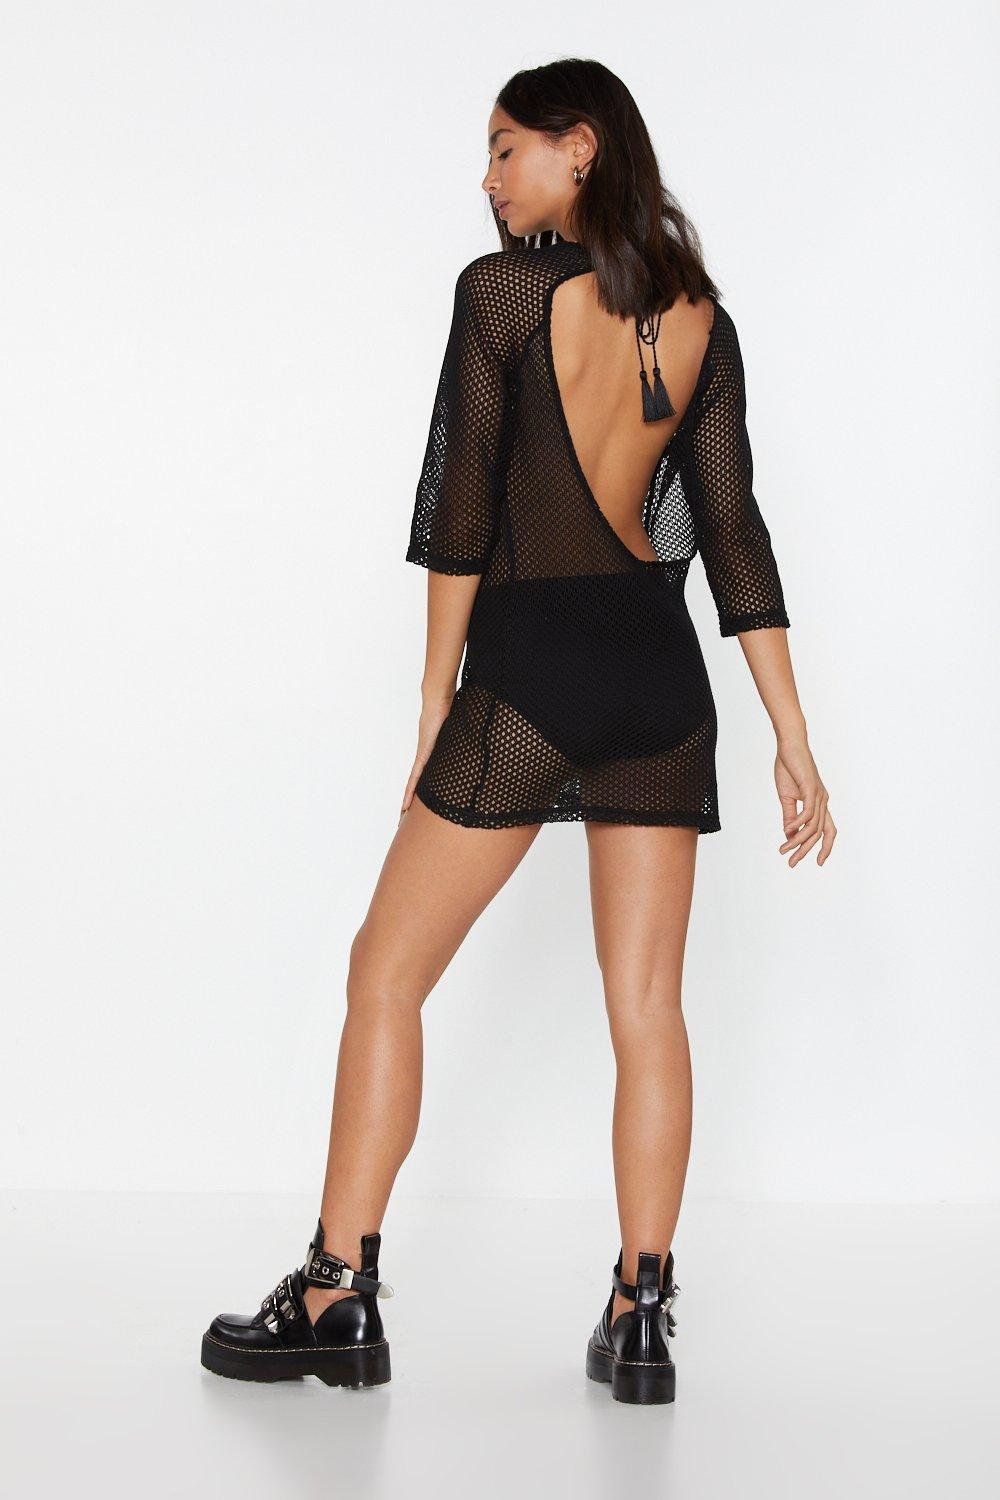 09c12abf712a Don't Let It Net You Down Fishnet Mini Dress | Shop Clothes at Nasty ...